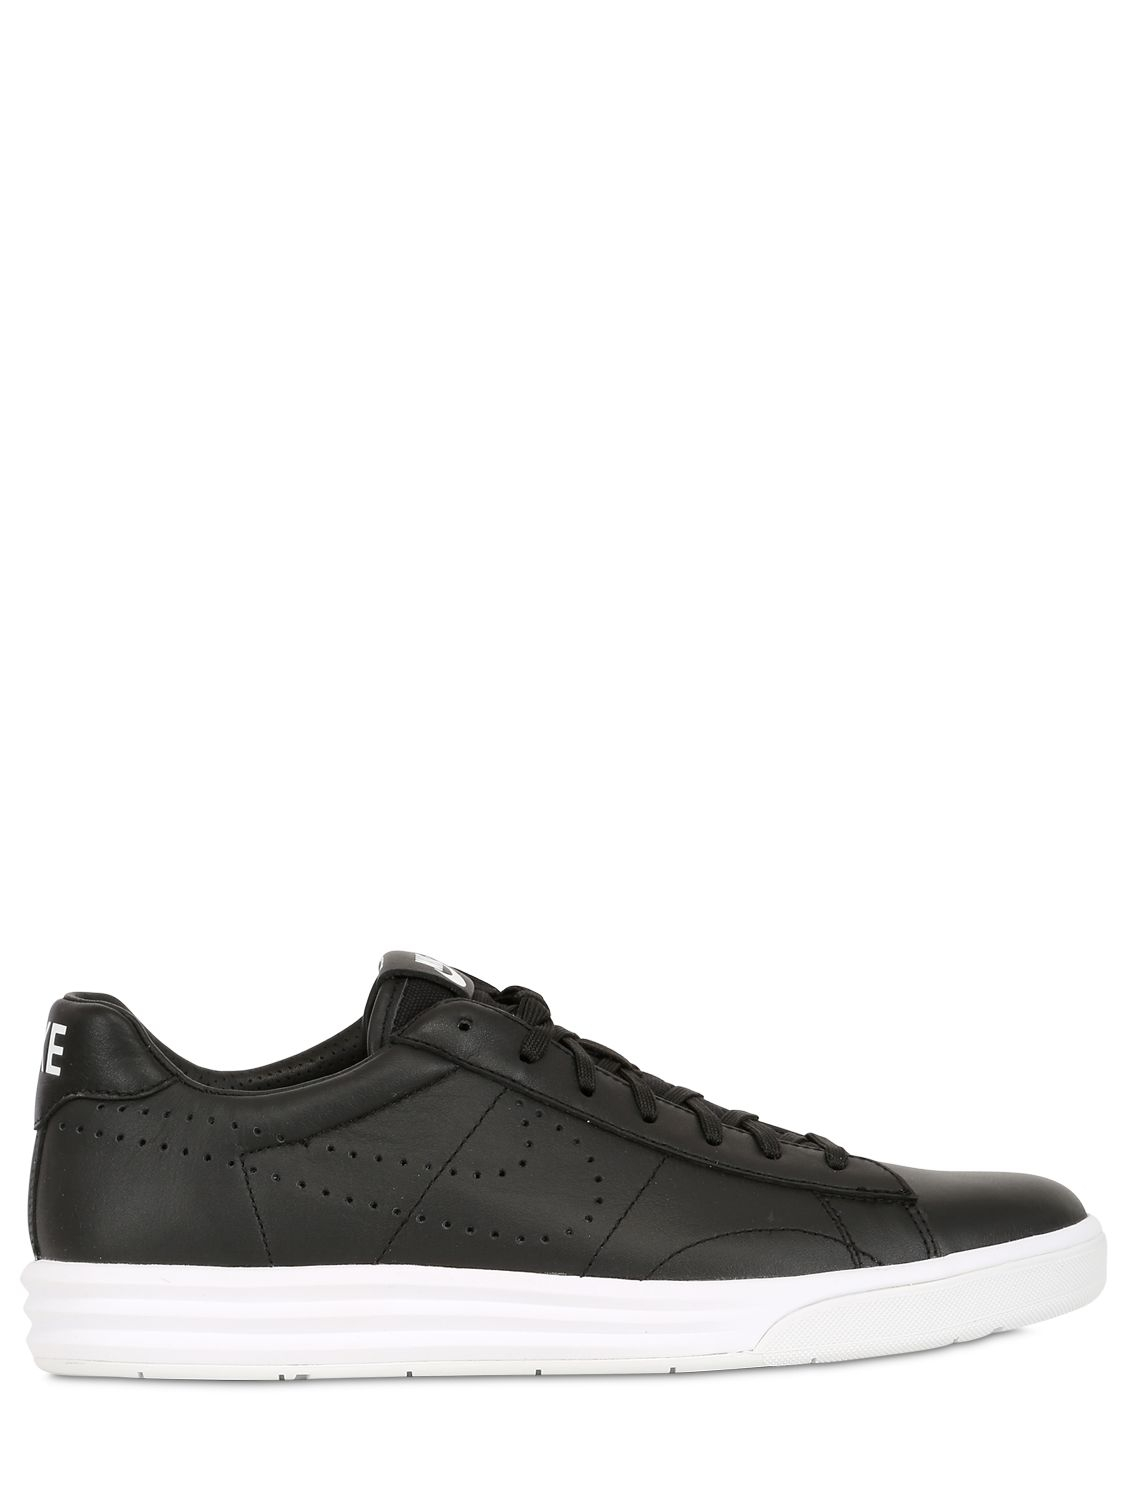 designer fashion 241b9 18a9c Nike Tennis Classic Lunar Deluxe Sneakers in Black for Men - Lyst